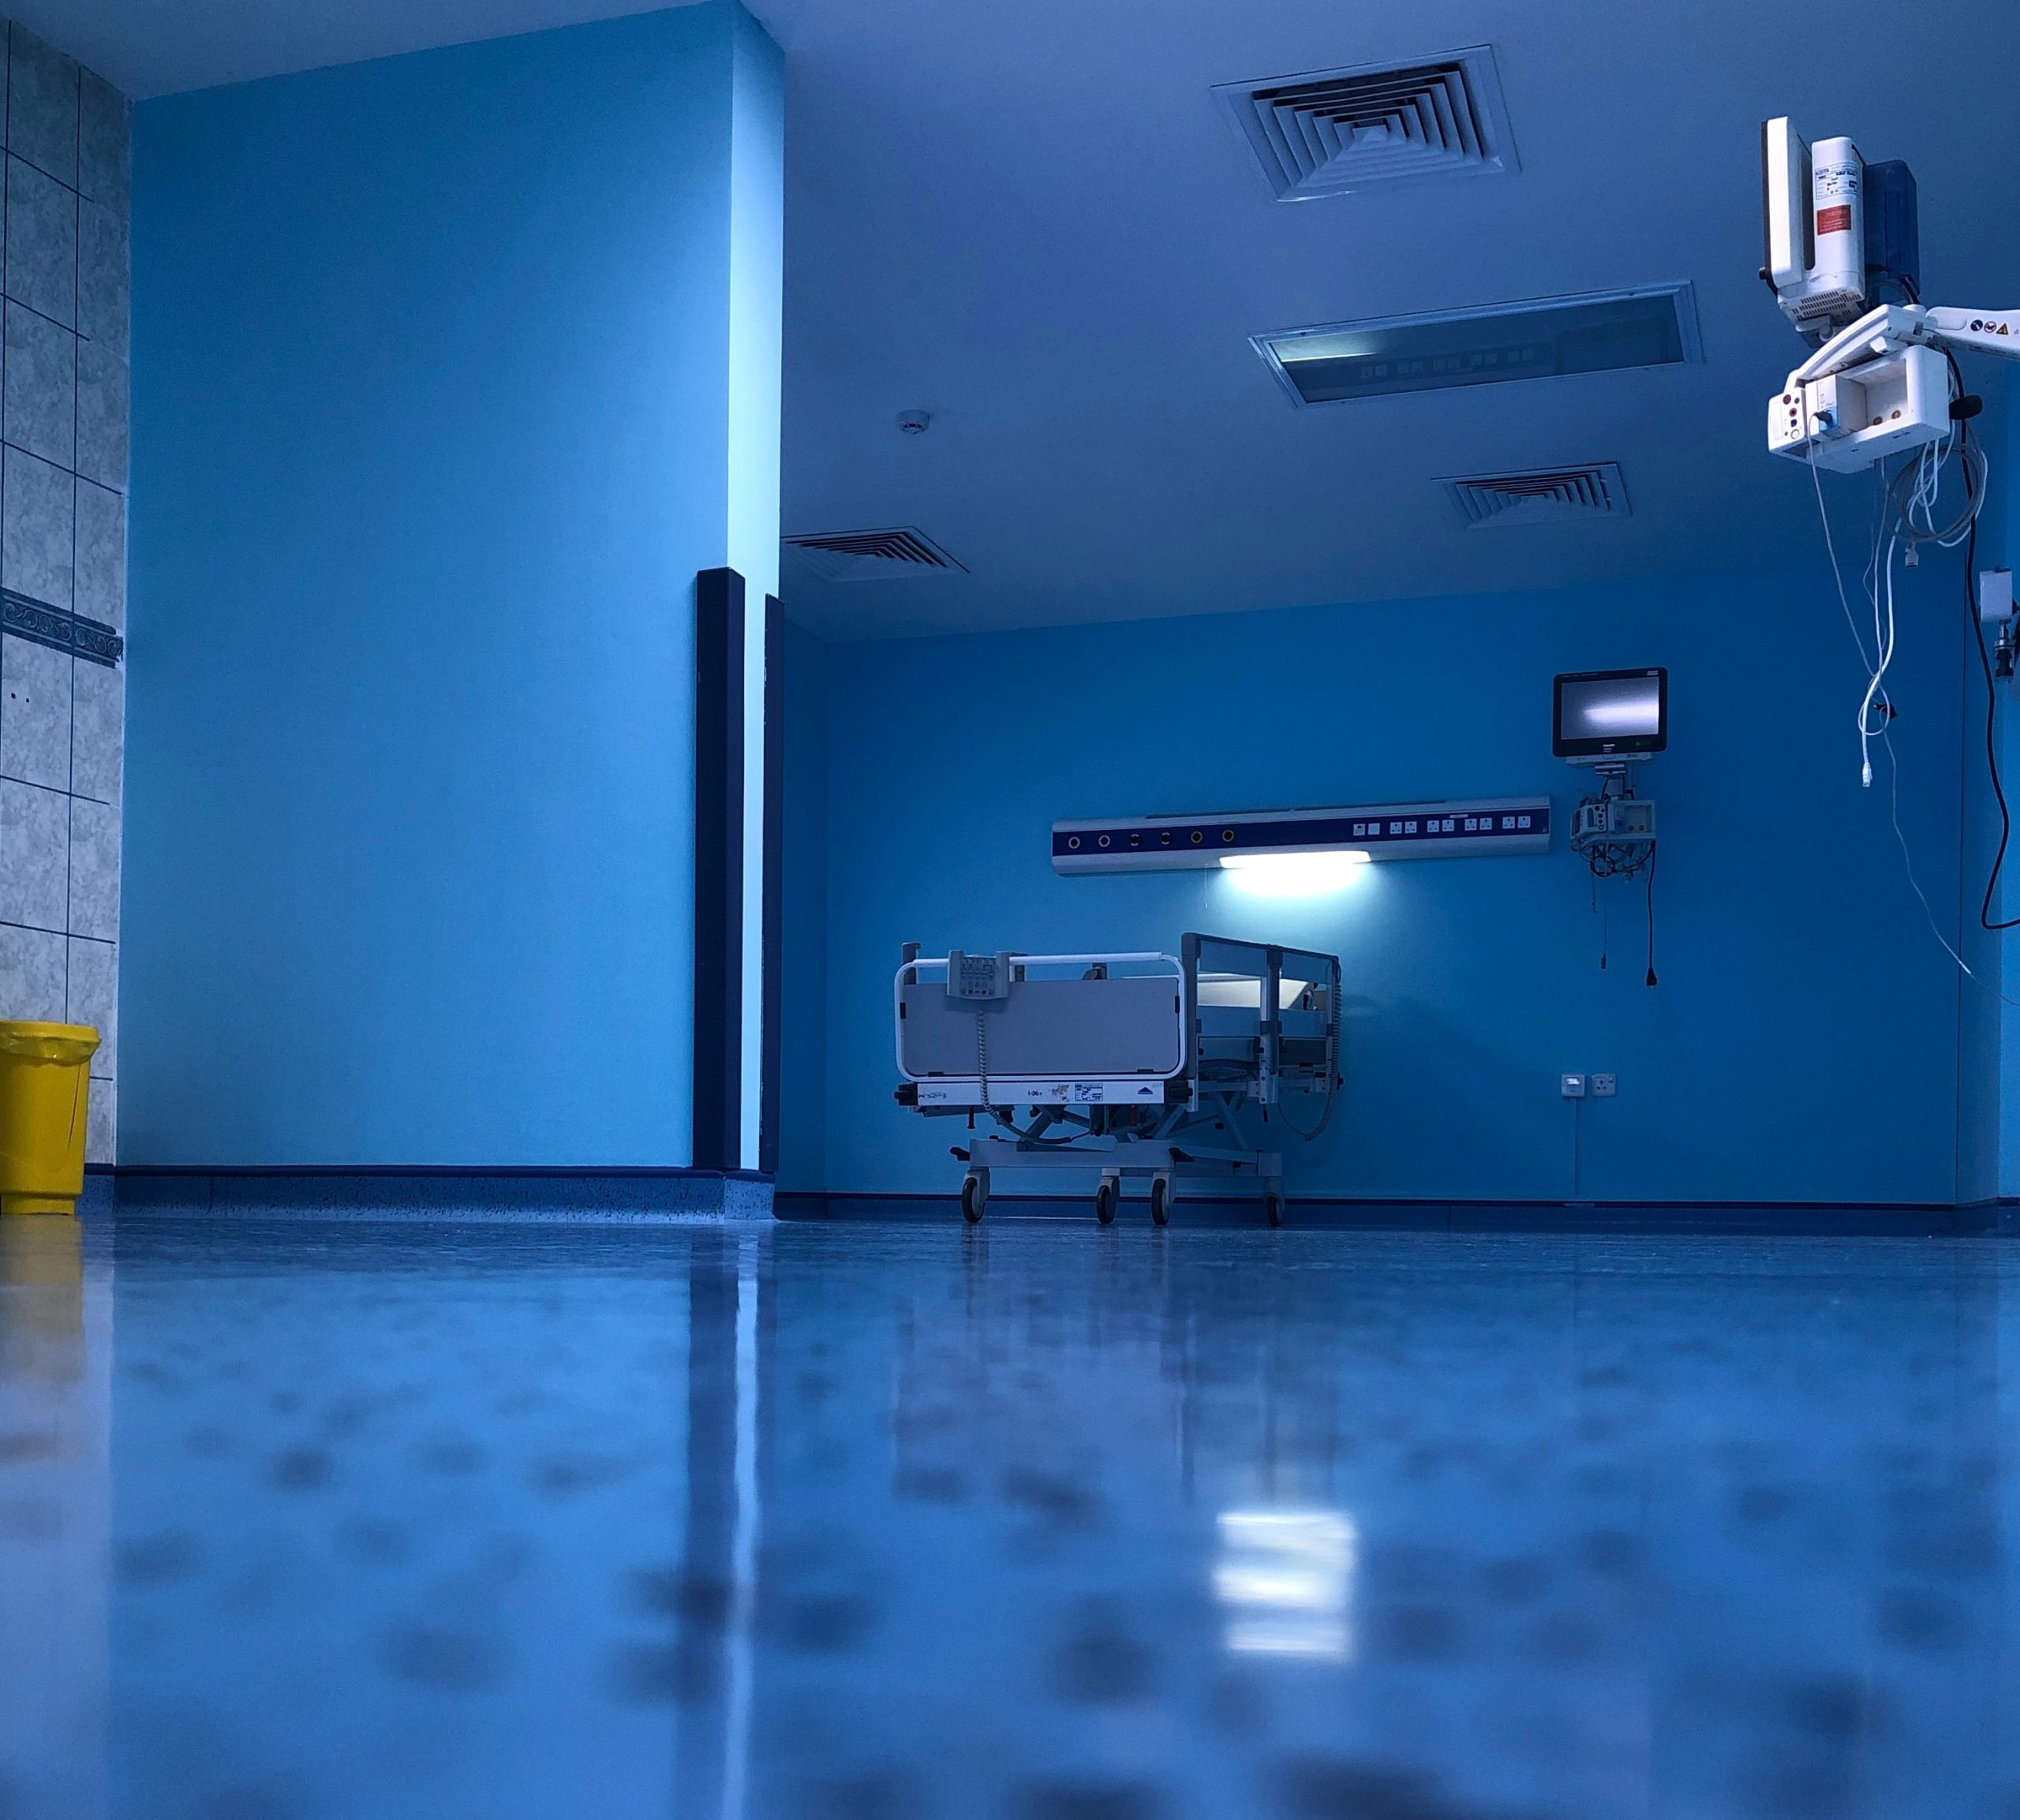 In Victoria, whether you get an ICU bed could depend on the hospital